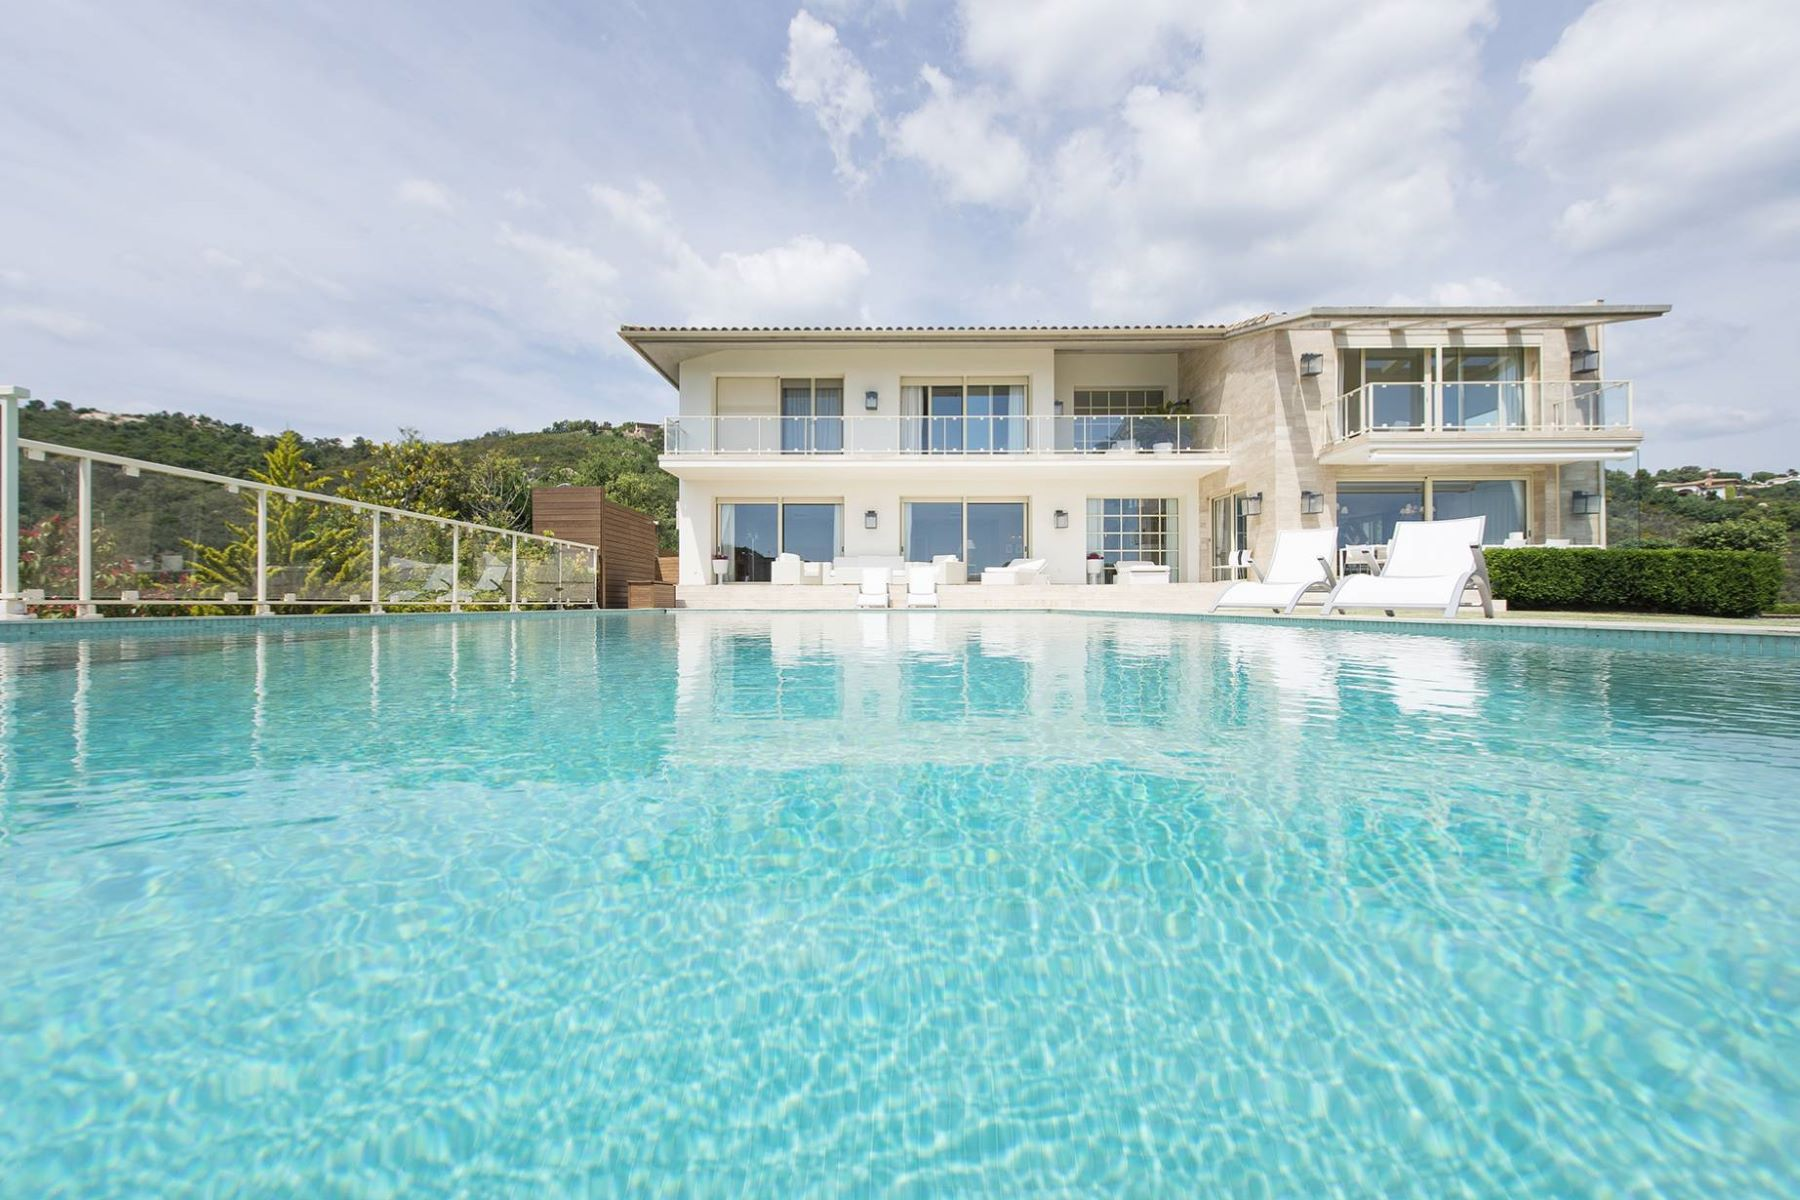 Single Family Home for Sale at Elegant mansion with great sea views Playa De Aro, Costa Brava, 17250 Spain